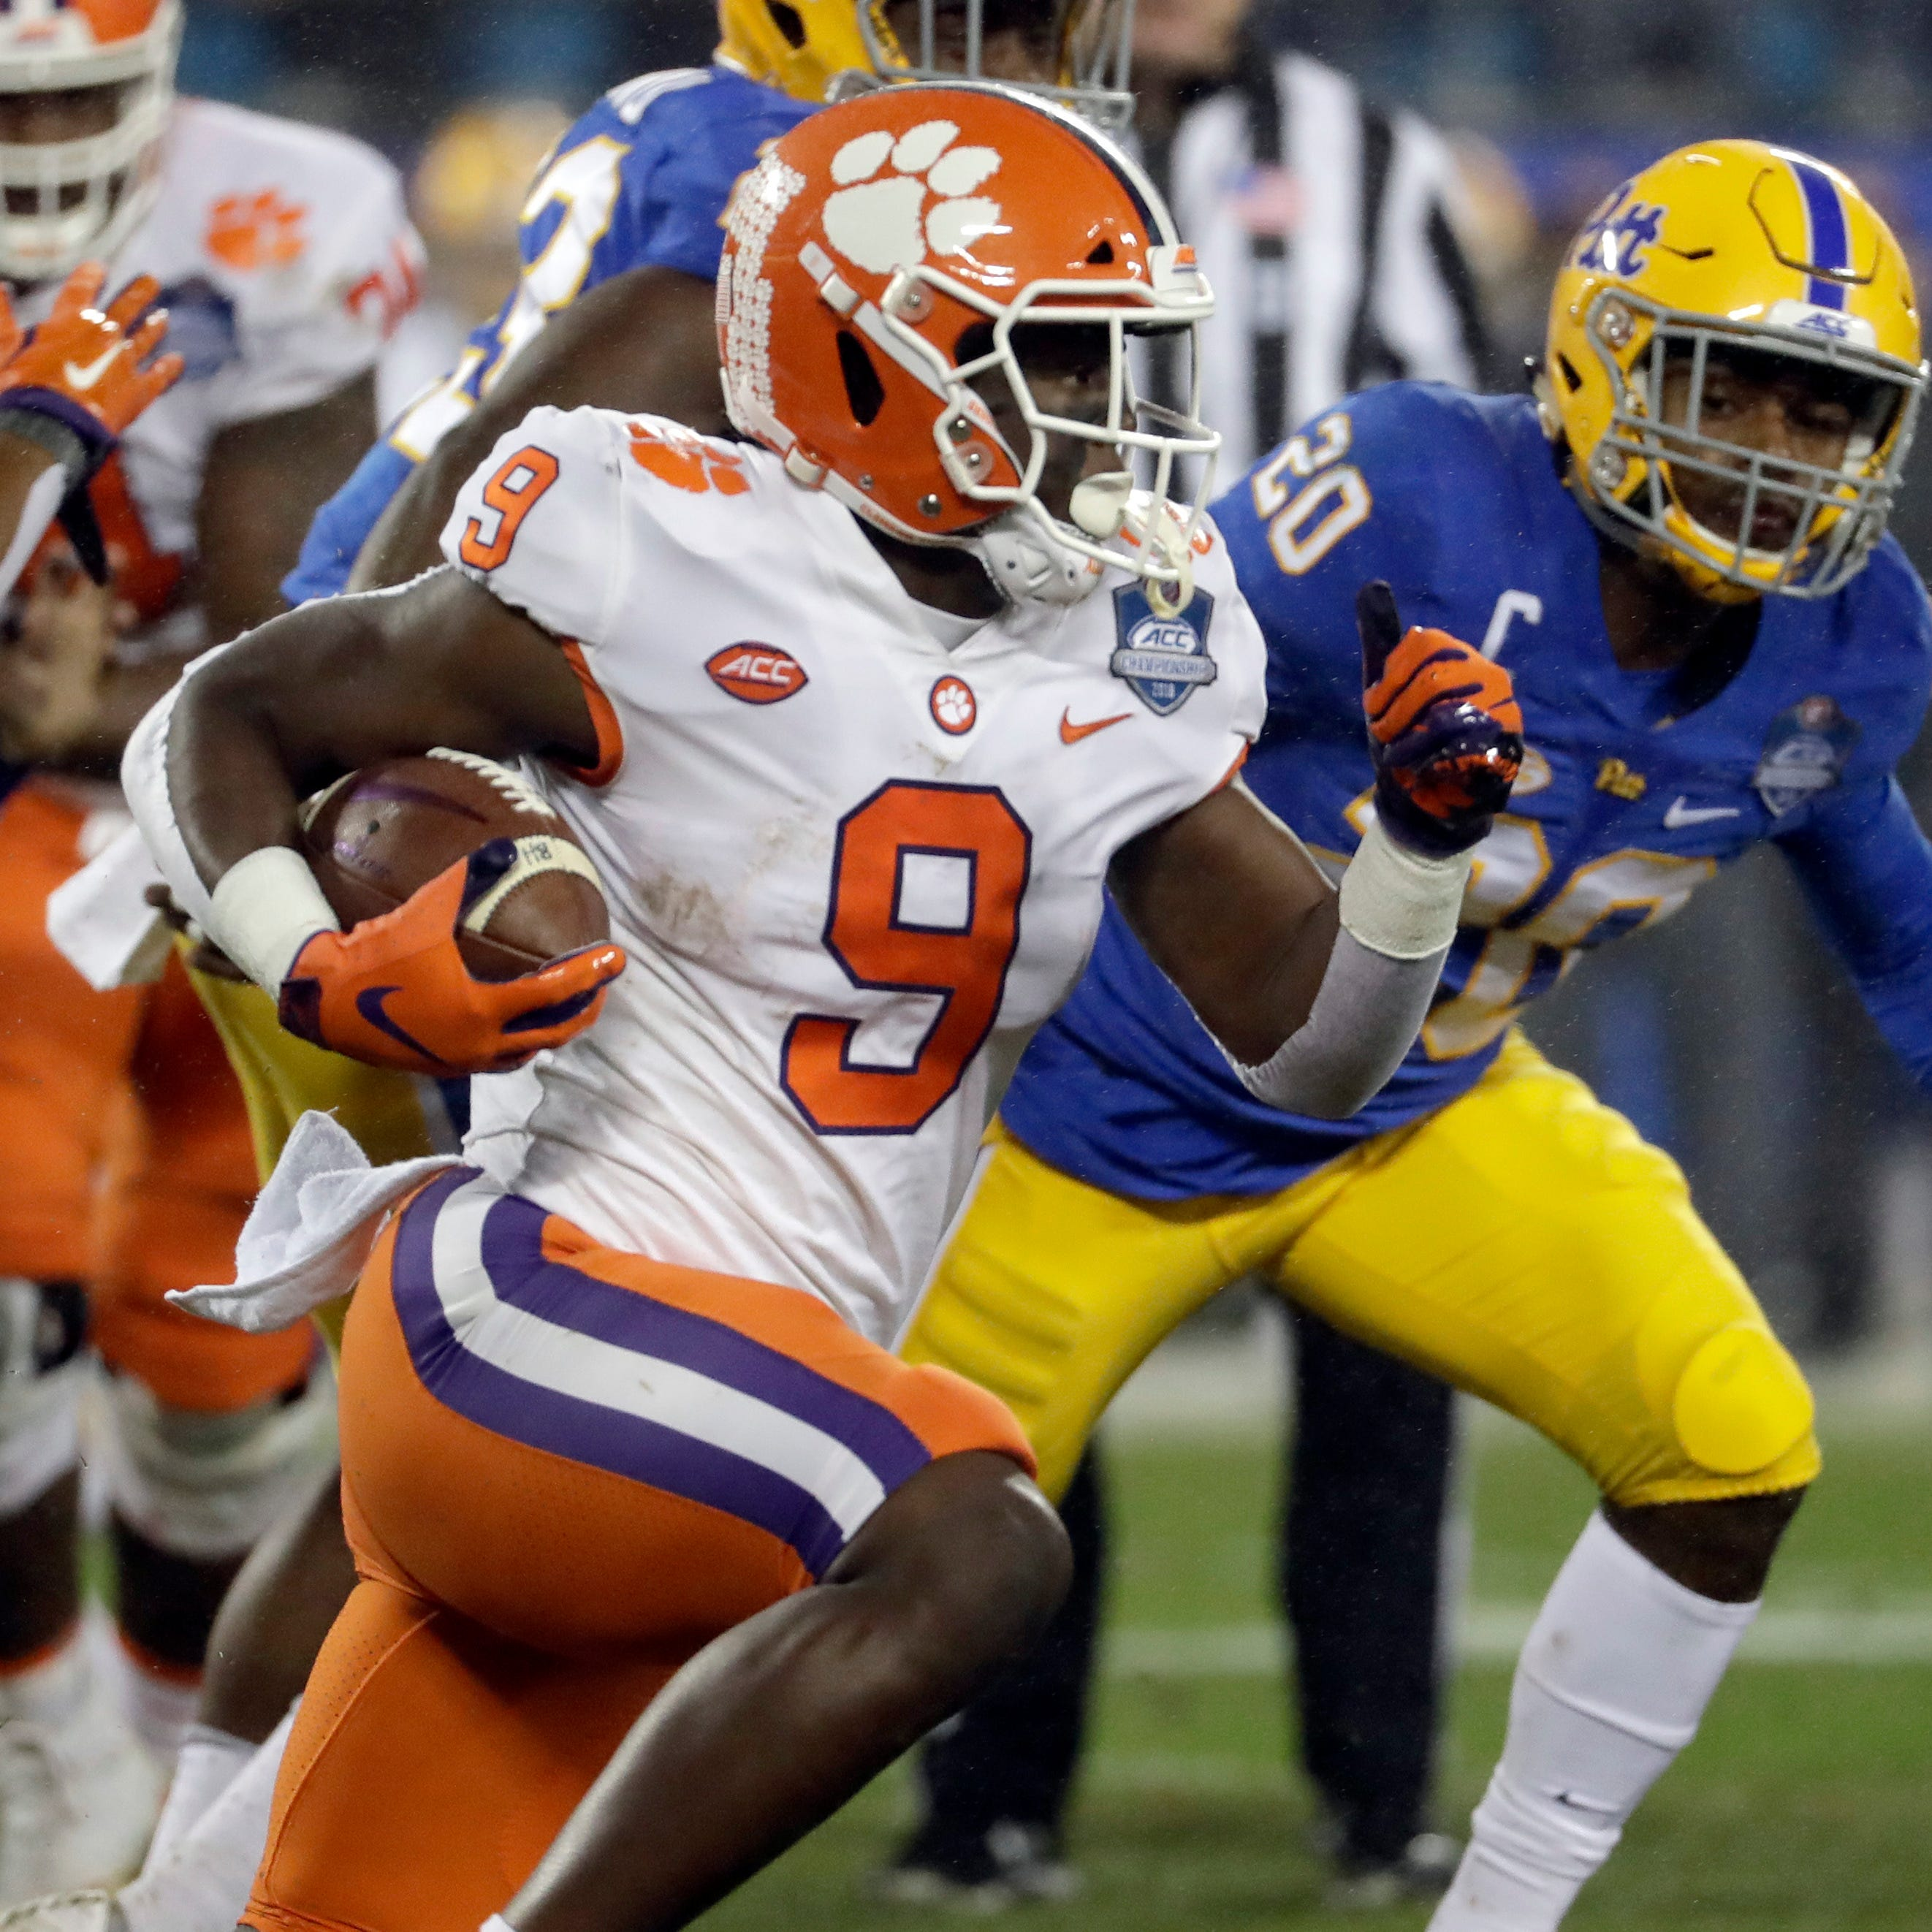 Lions take RB Travis Etienne at No. 23 in Todd McShay's early 2020 NFL mock draft